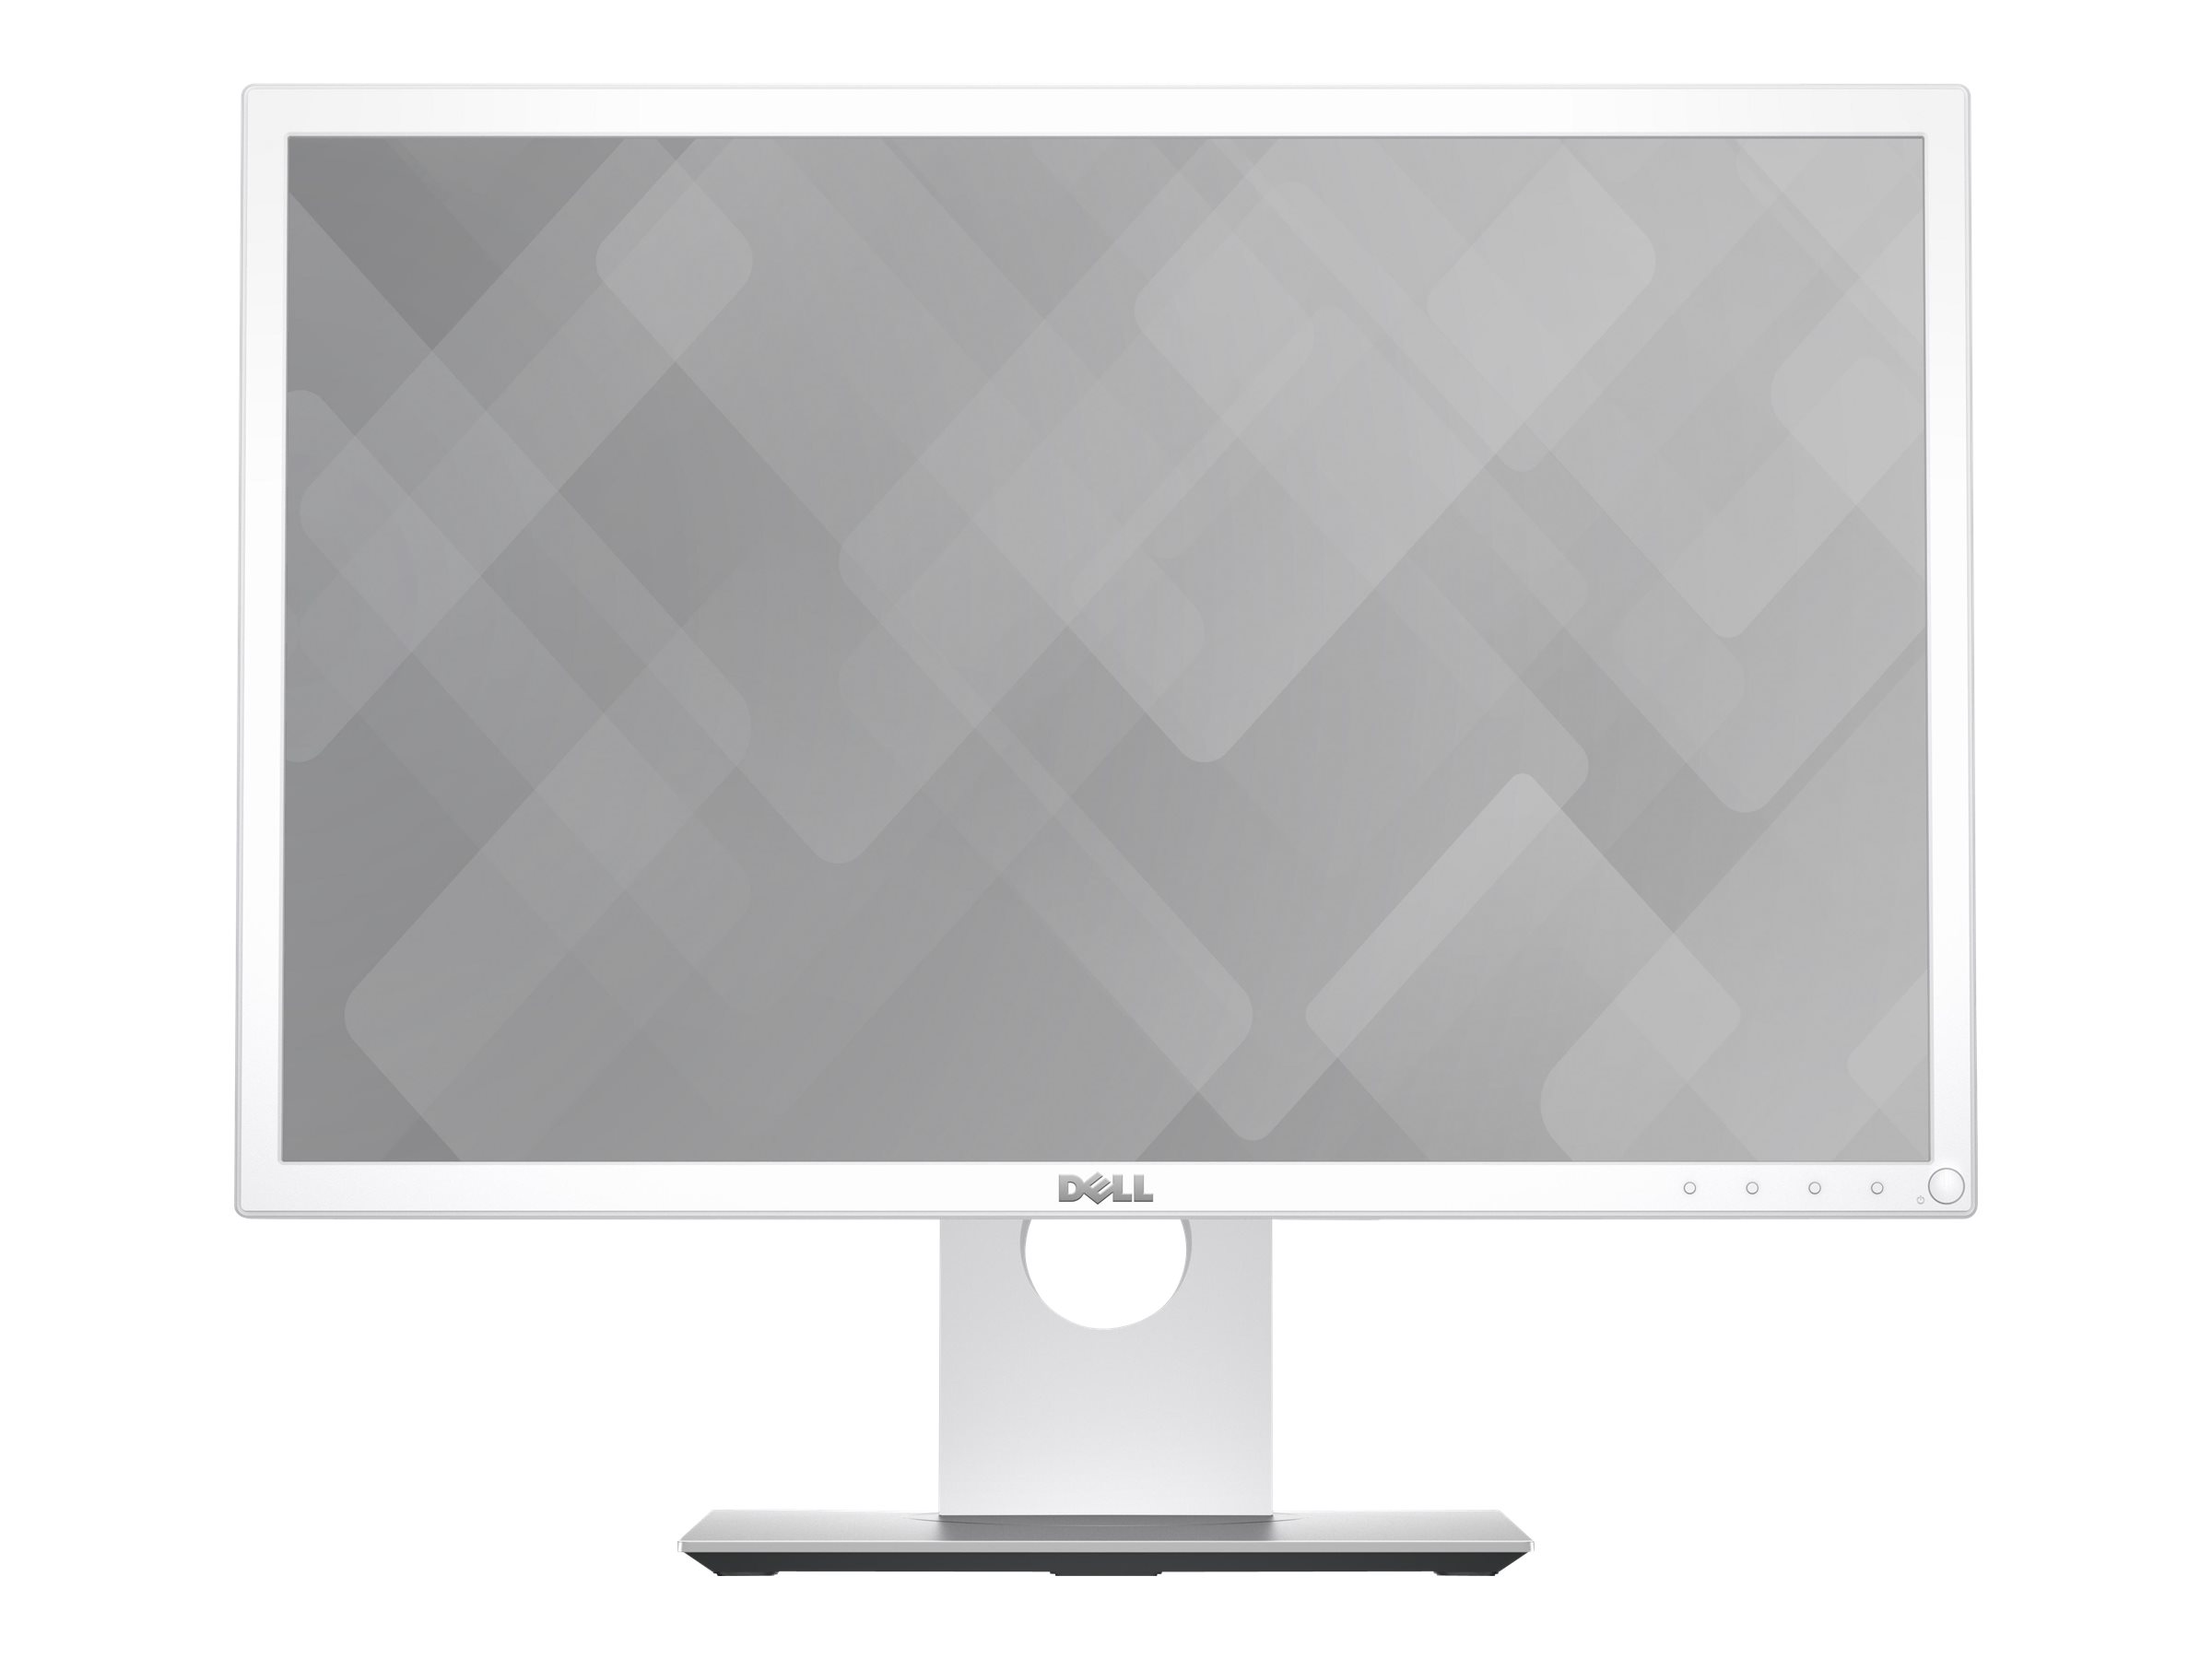 Dell P2217 - LED-Monitor - 55.87 cm (22